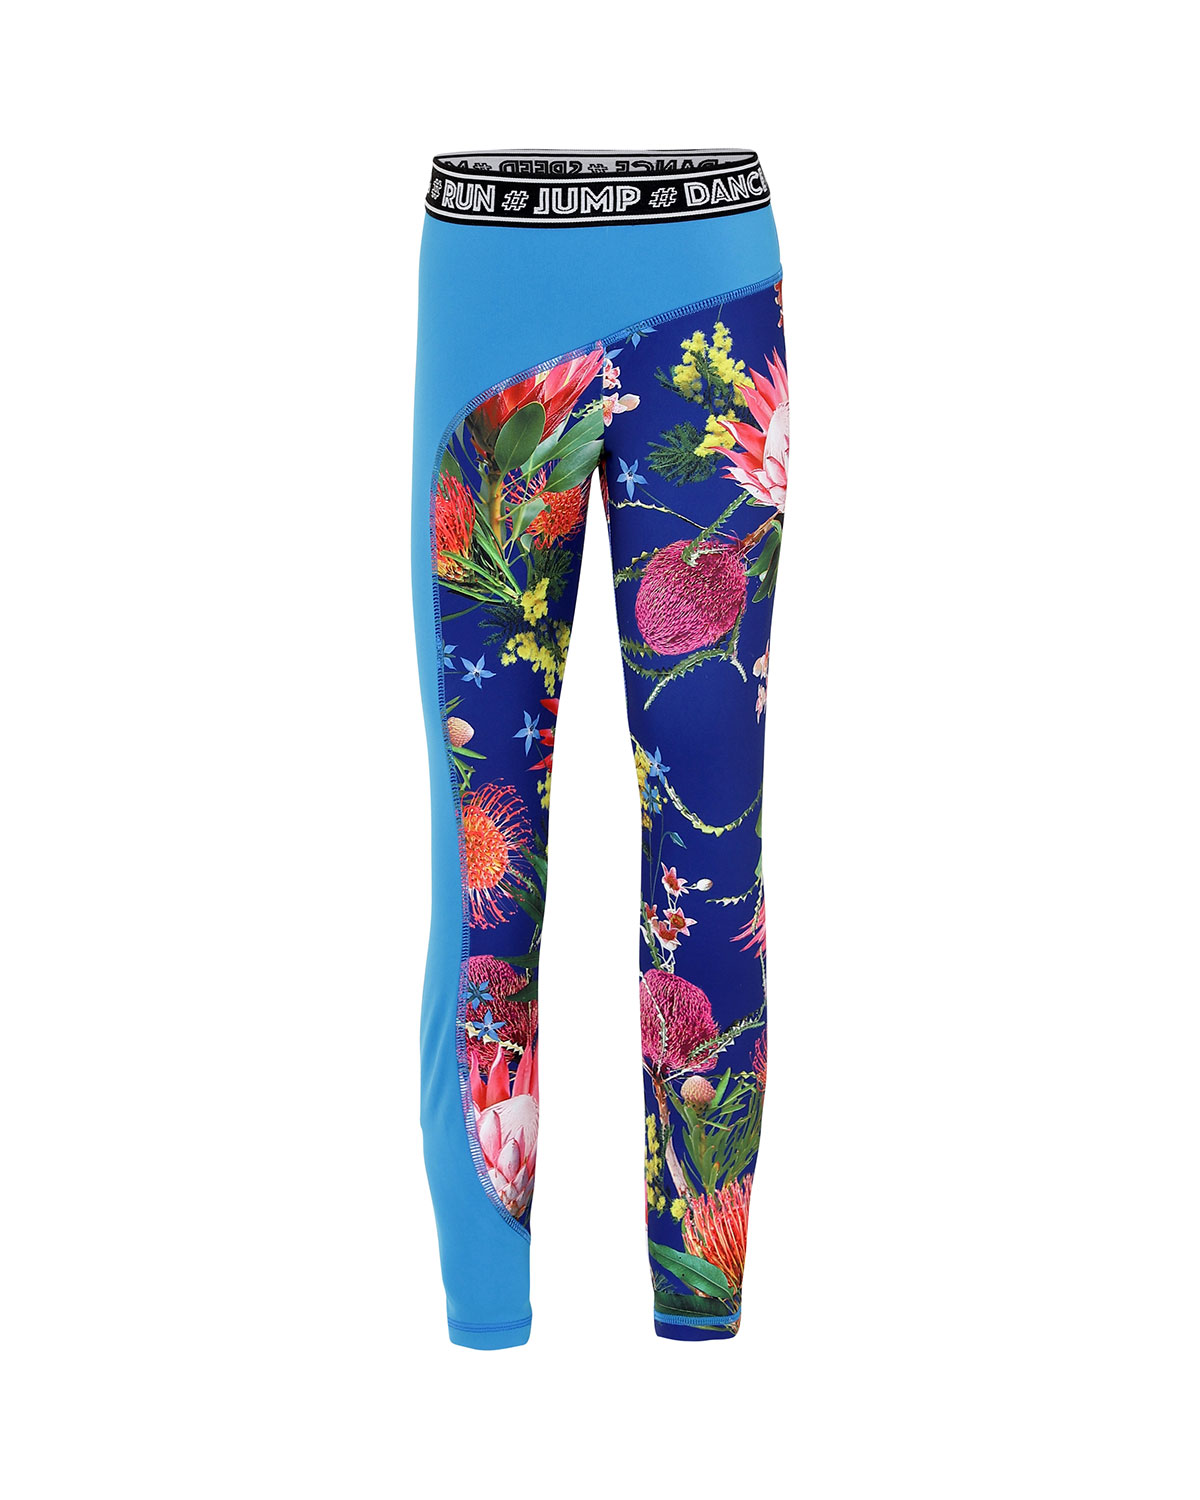 Molo GIRL'S OLYMPIA FLORAL PRINT FULL LENGTH WORKOUT LEGGINGS W/ CONTRAST PANEL